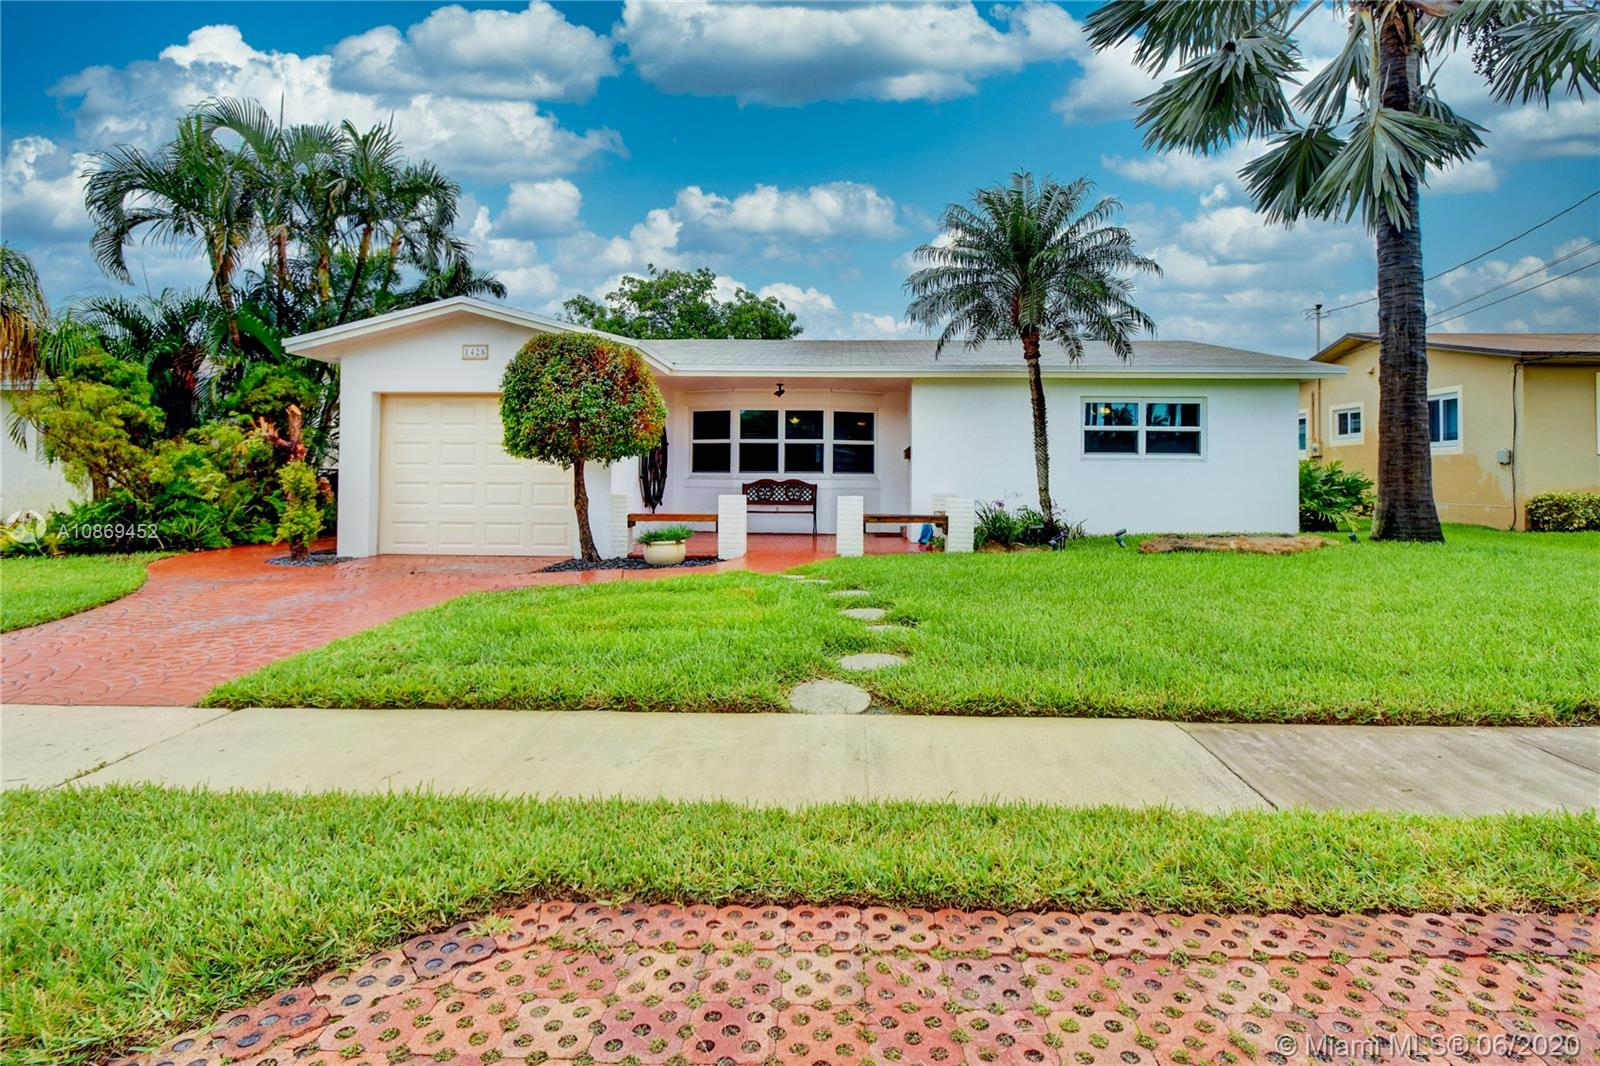 Perfect home for boaters who want easy Ocean Access. Just off the Dania Cutoff Canal, close to the Intracoastal and Port Everglades! Only one fixed bridge. This 3/2 has a great layout with an open concept kitchen/family room, separate dining room, and snack bar. Tile floors throughout, brand new hurricane impact windows and doors. The exterior was painted a couple of months ago. Beautiful tropical backyard with a mature avocado tree. Enjoy gorgeous sunrises and sunsets! Features a large deck area, 58' water frontage, 32' dock. The community has tennis courts, a child's playground area, basketball court. Great bicycling lanes throughout Dania, and only 4 miles to the beach. Excellent shopping and dining at nearby Dania Pointe, Las Olas, The Hard Rock, Hollywood. And did I mention, NO HOA!